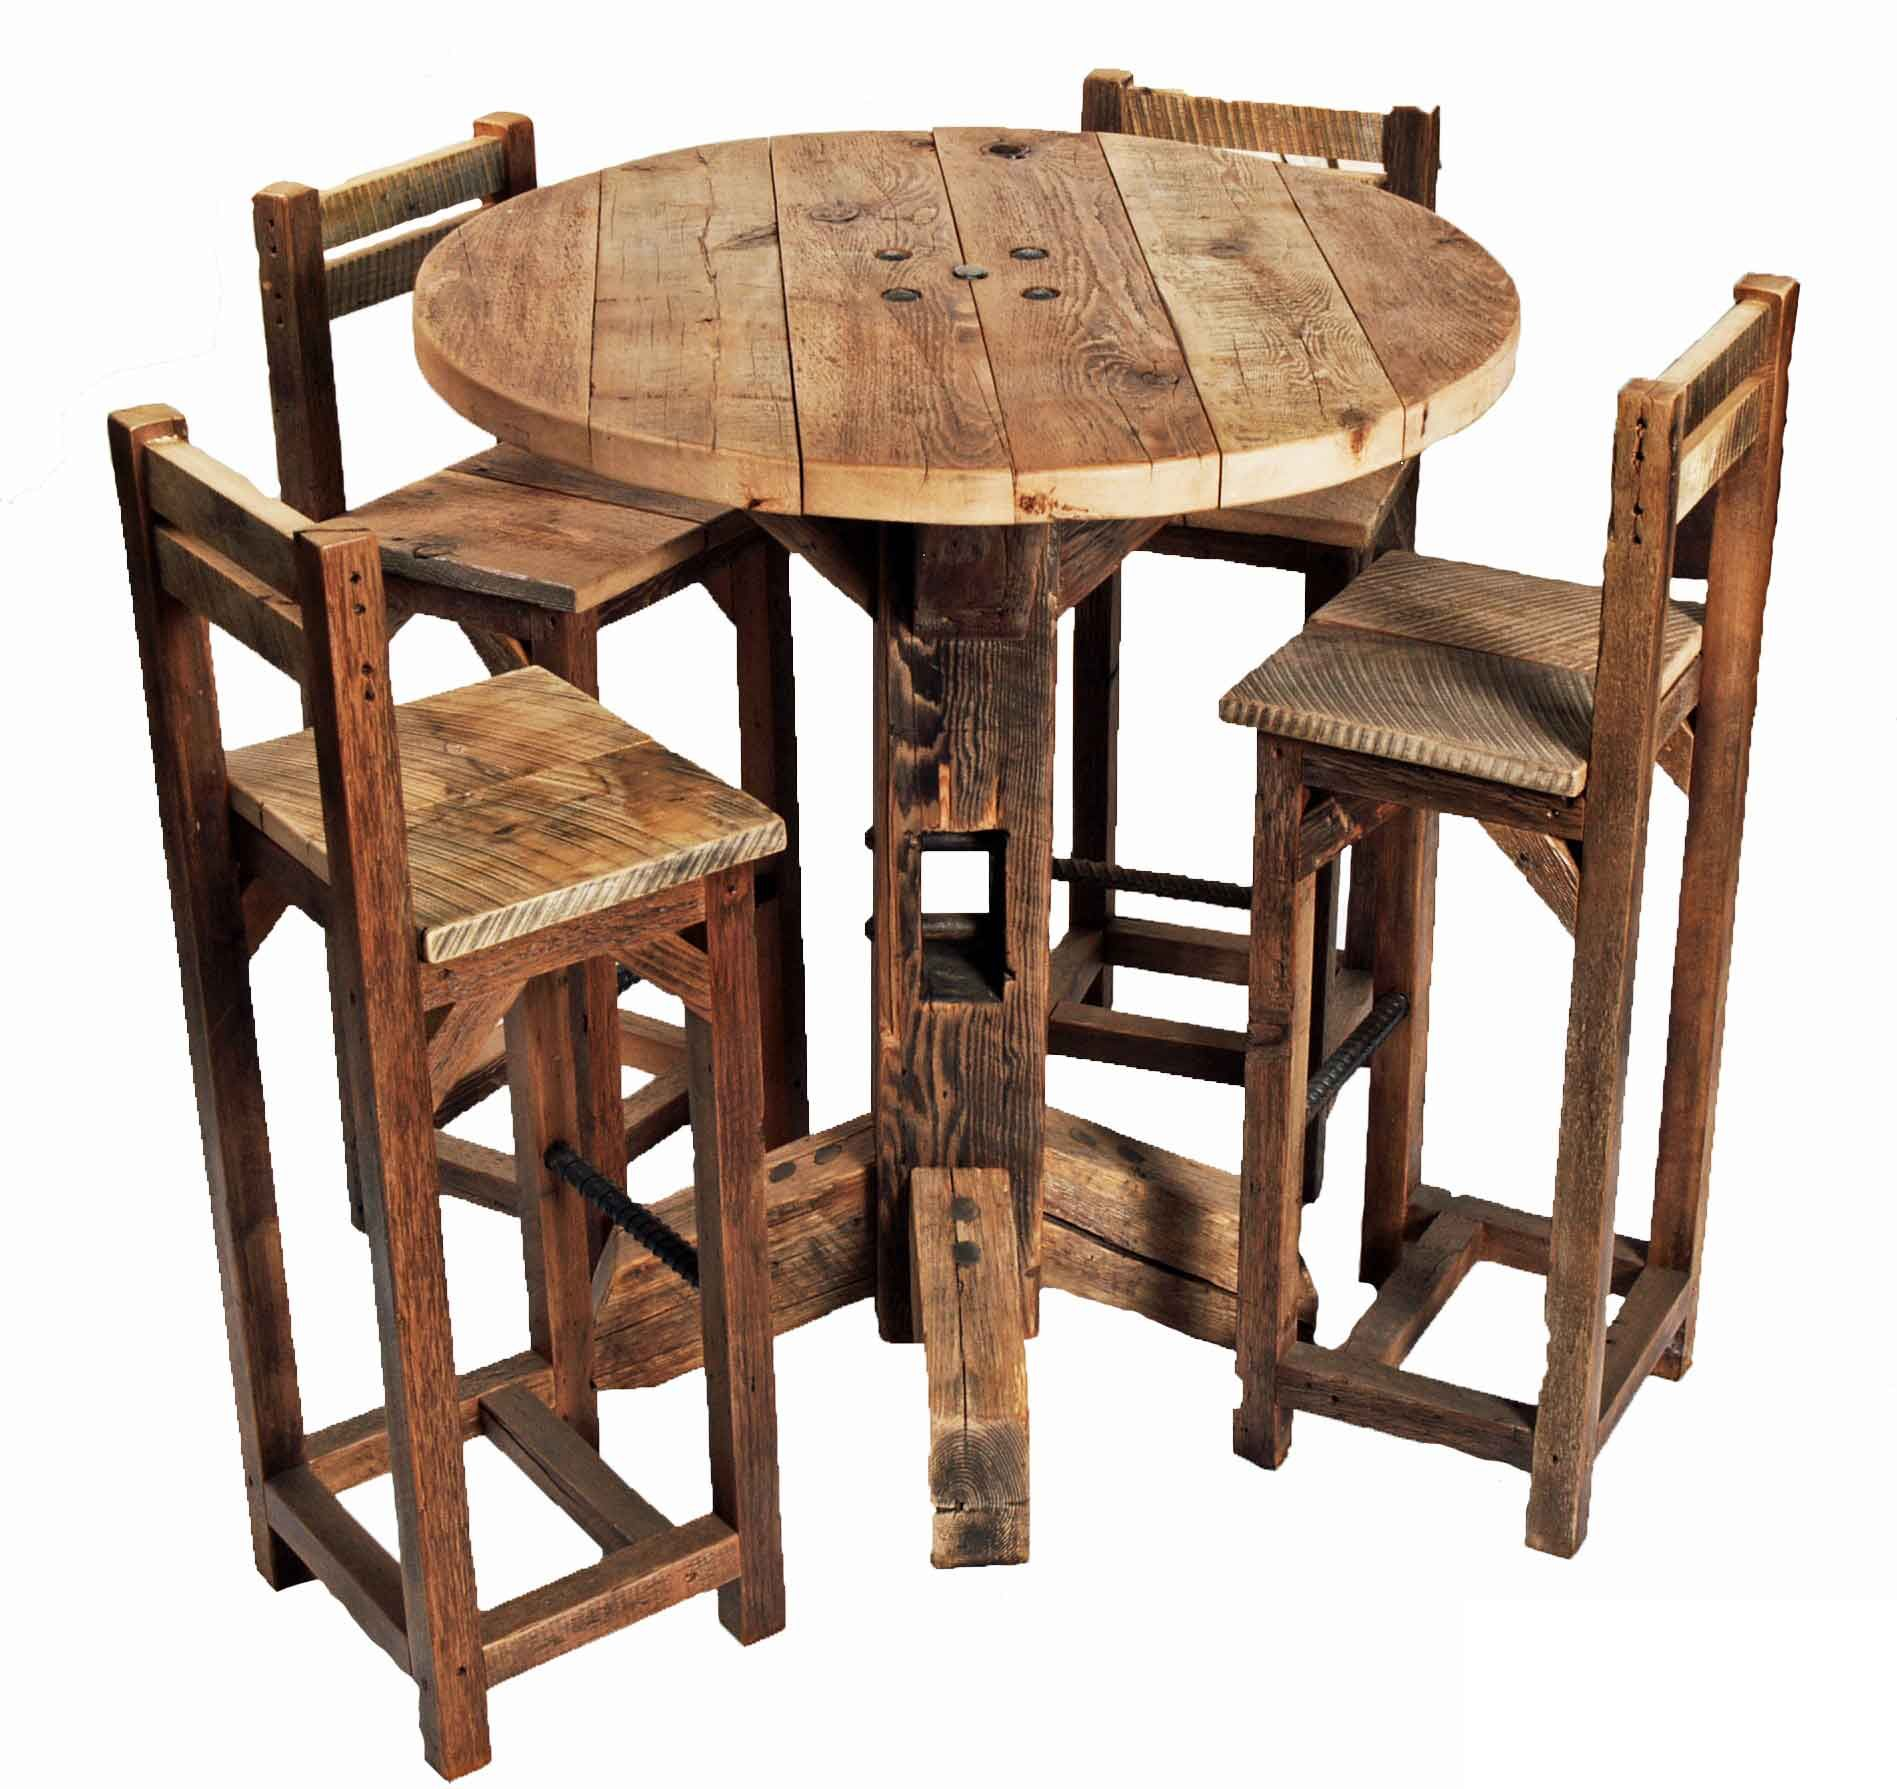 High Kitchen Table Set furniture, old rustic small high round top kitchen table and chair